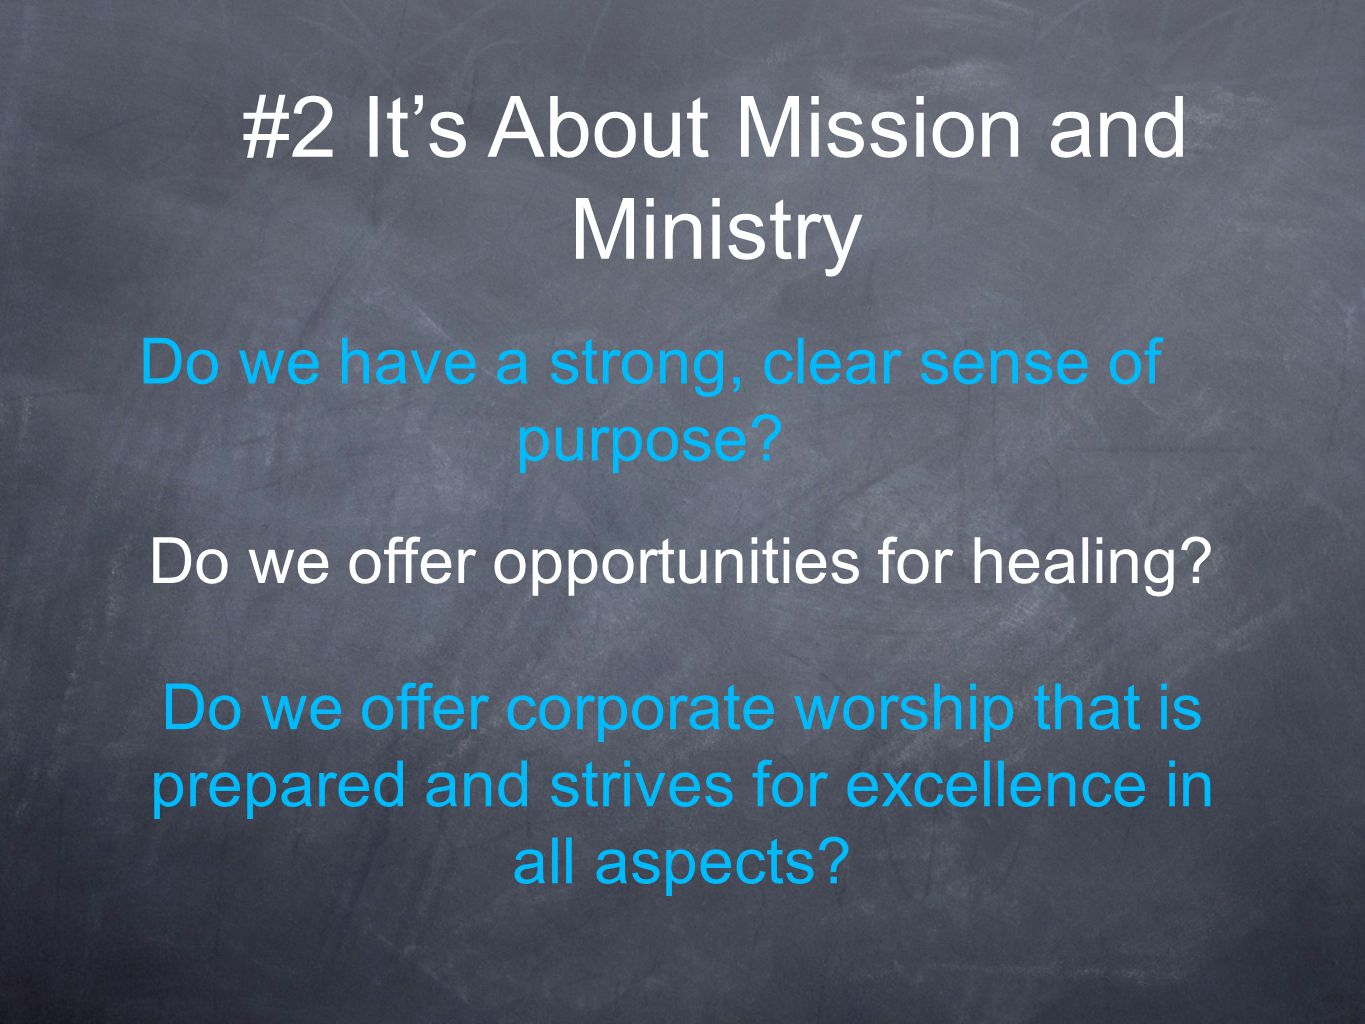 Do we offer corporate worship that is prepared and strives for excellence in all aspects.